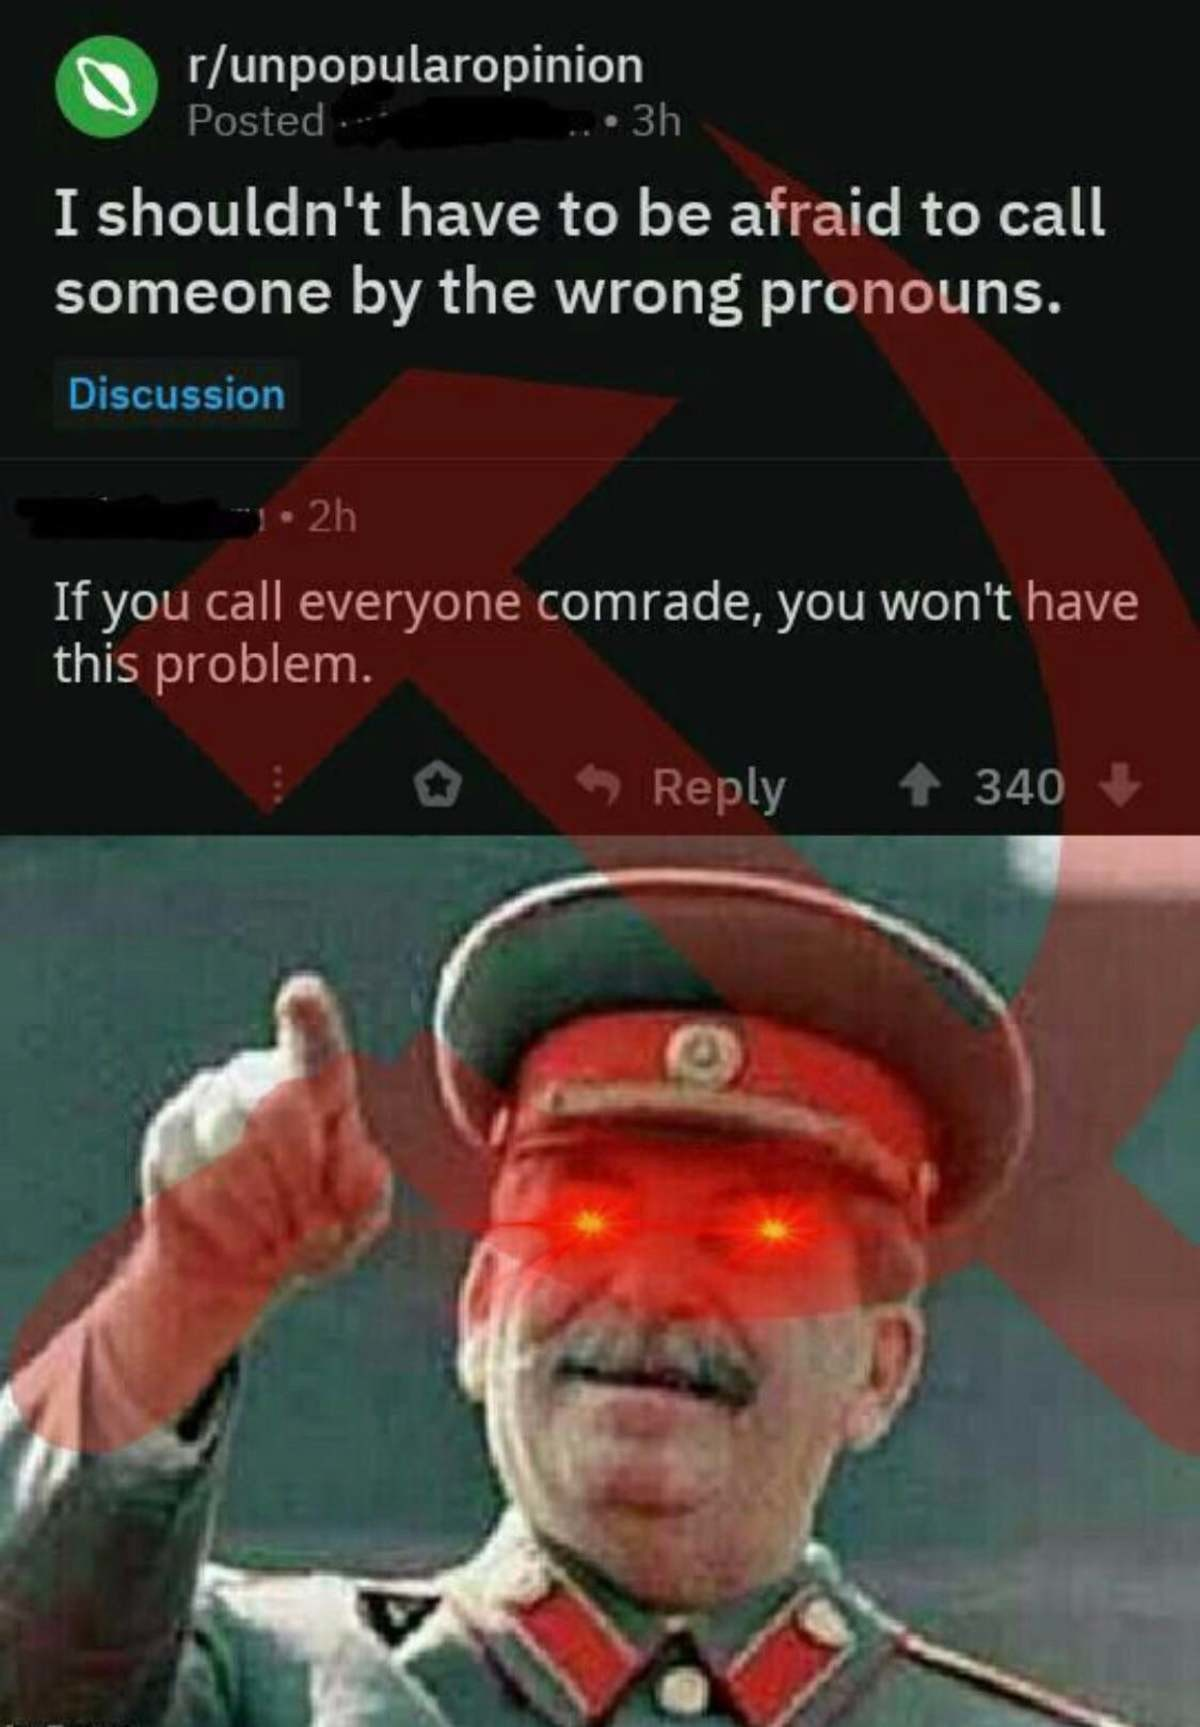 Comrade. .. Or, you can just call everyone and be done with it.